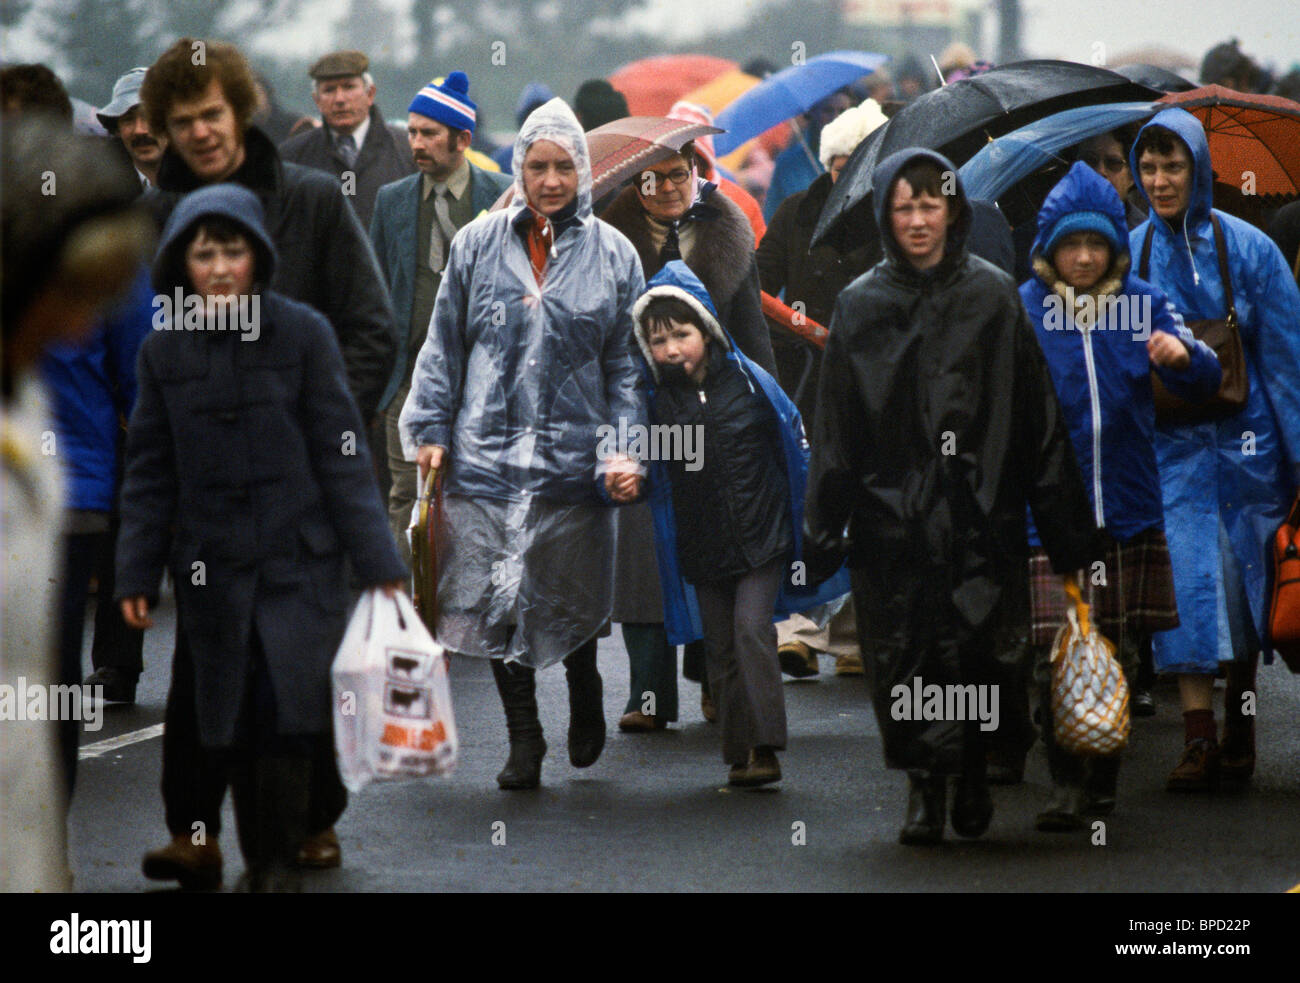 Crowds struggle through heavy rain after attending mass celebrated by Pope John Paul II in Knock, Ireland - Stock Image